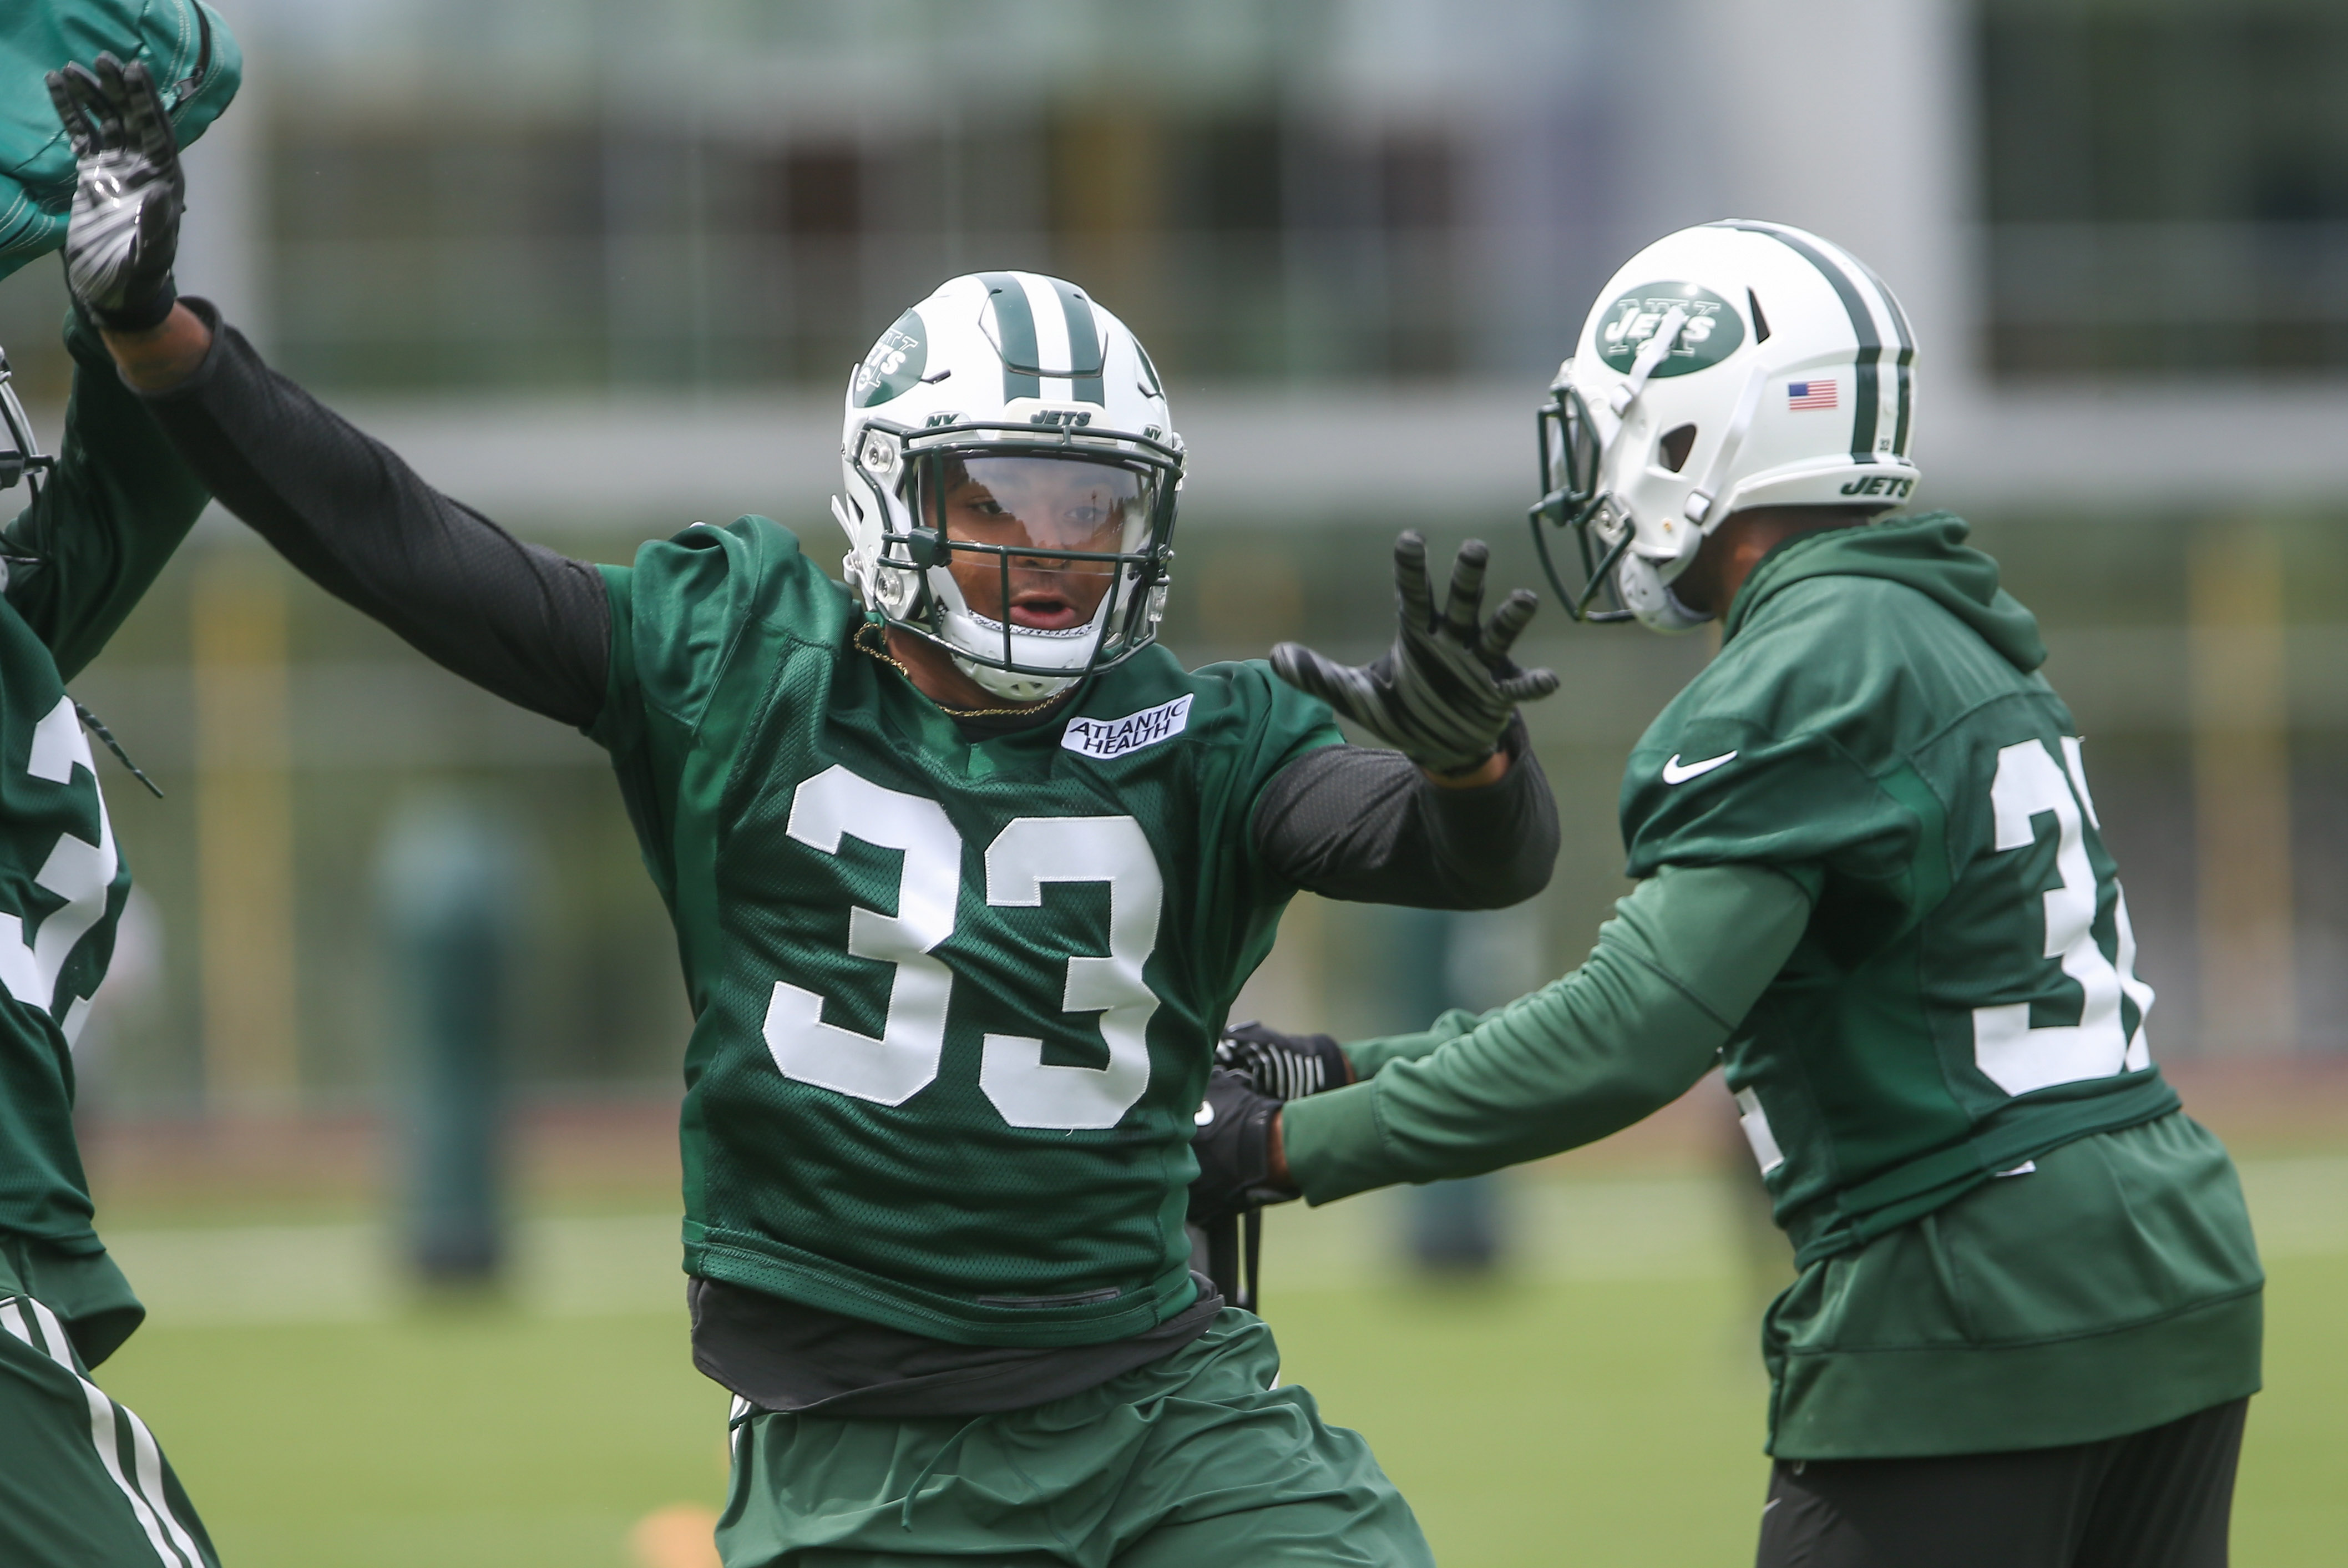 New York Jets: Top 5 players to keep an eye on in 2017